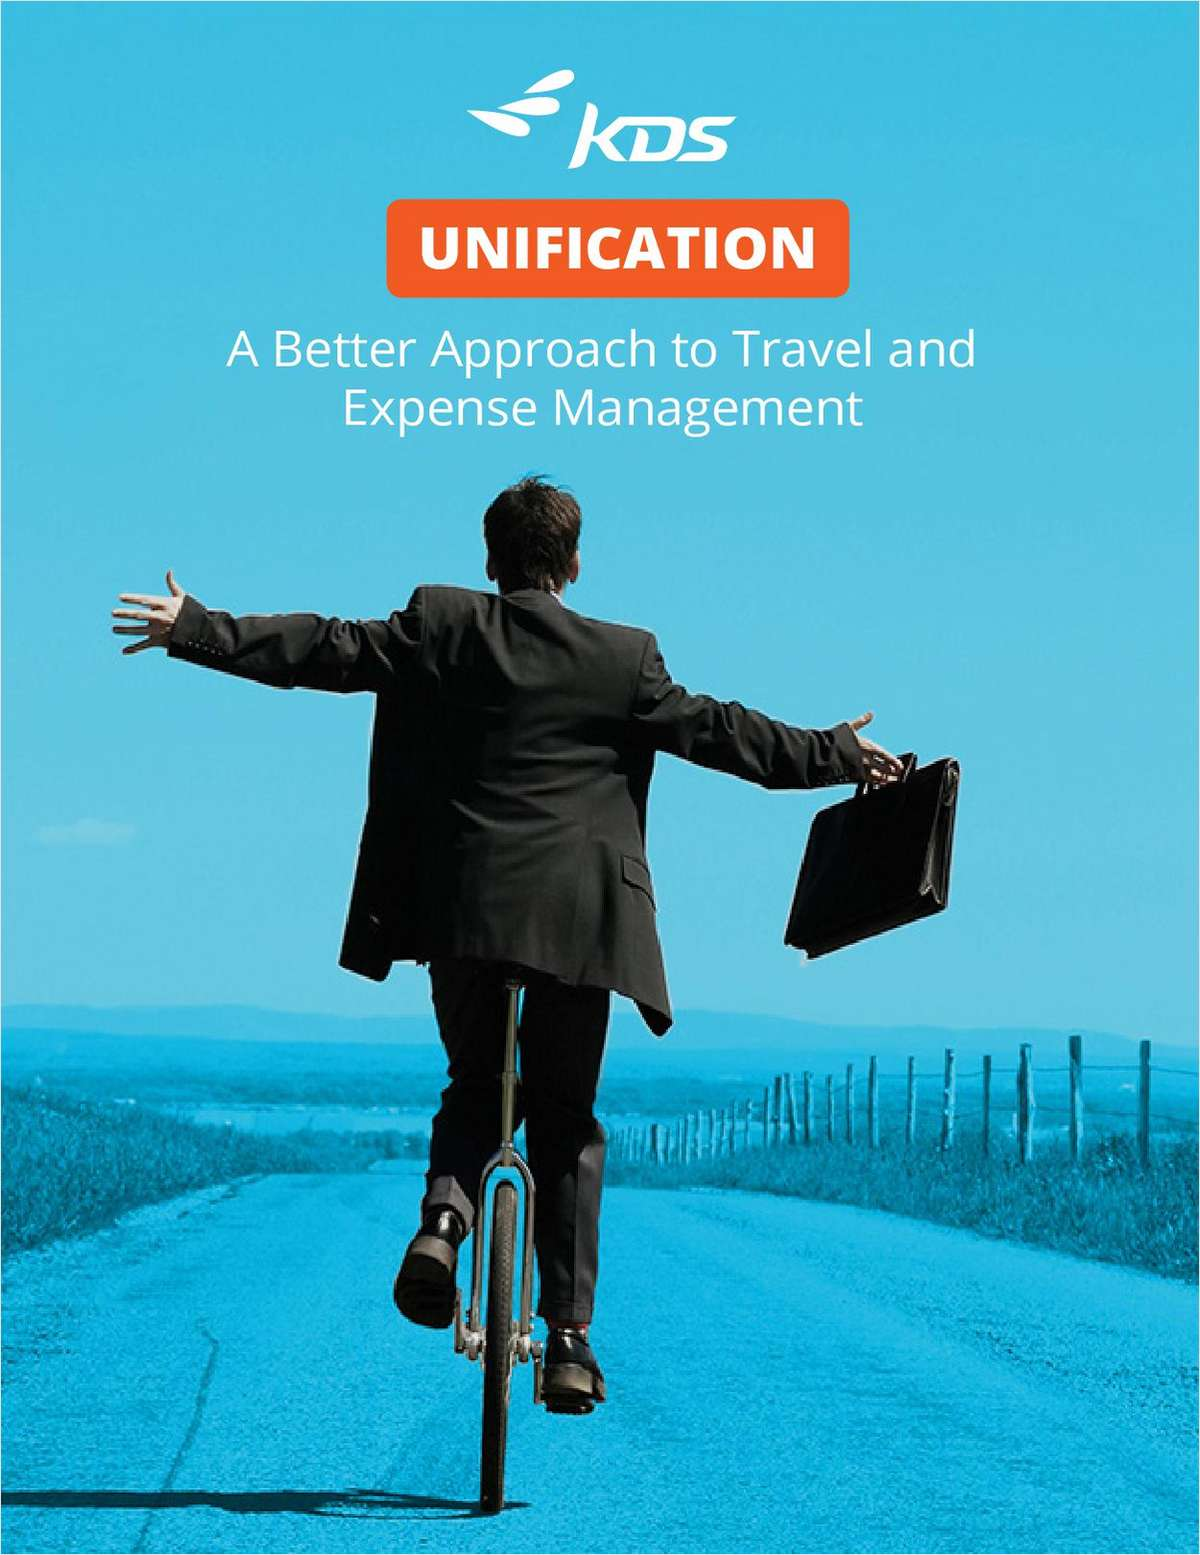 Unification: A Better Approach to Travel and Expense Management